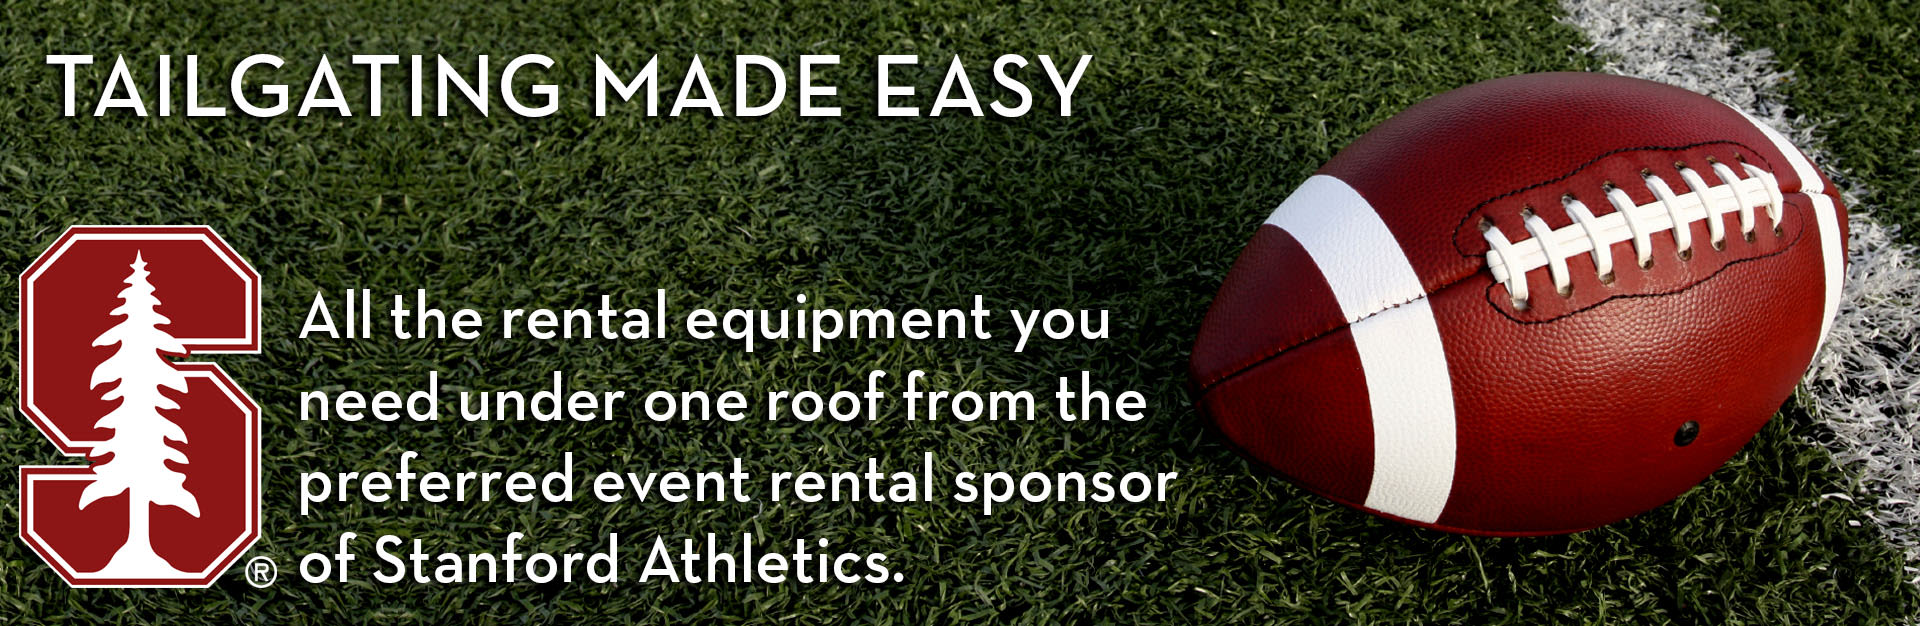 Tailgating Made Easy. All the rental equipment you need under one roof from the preferred event rental sponsor of Stanford Athletics.